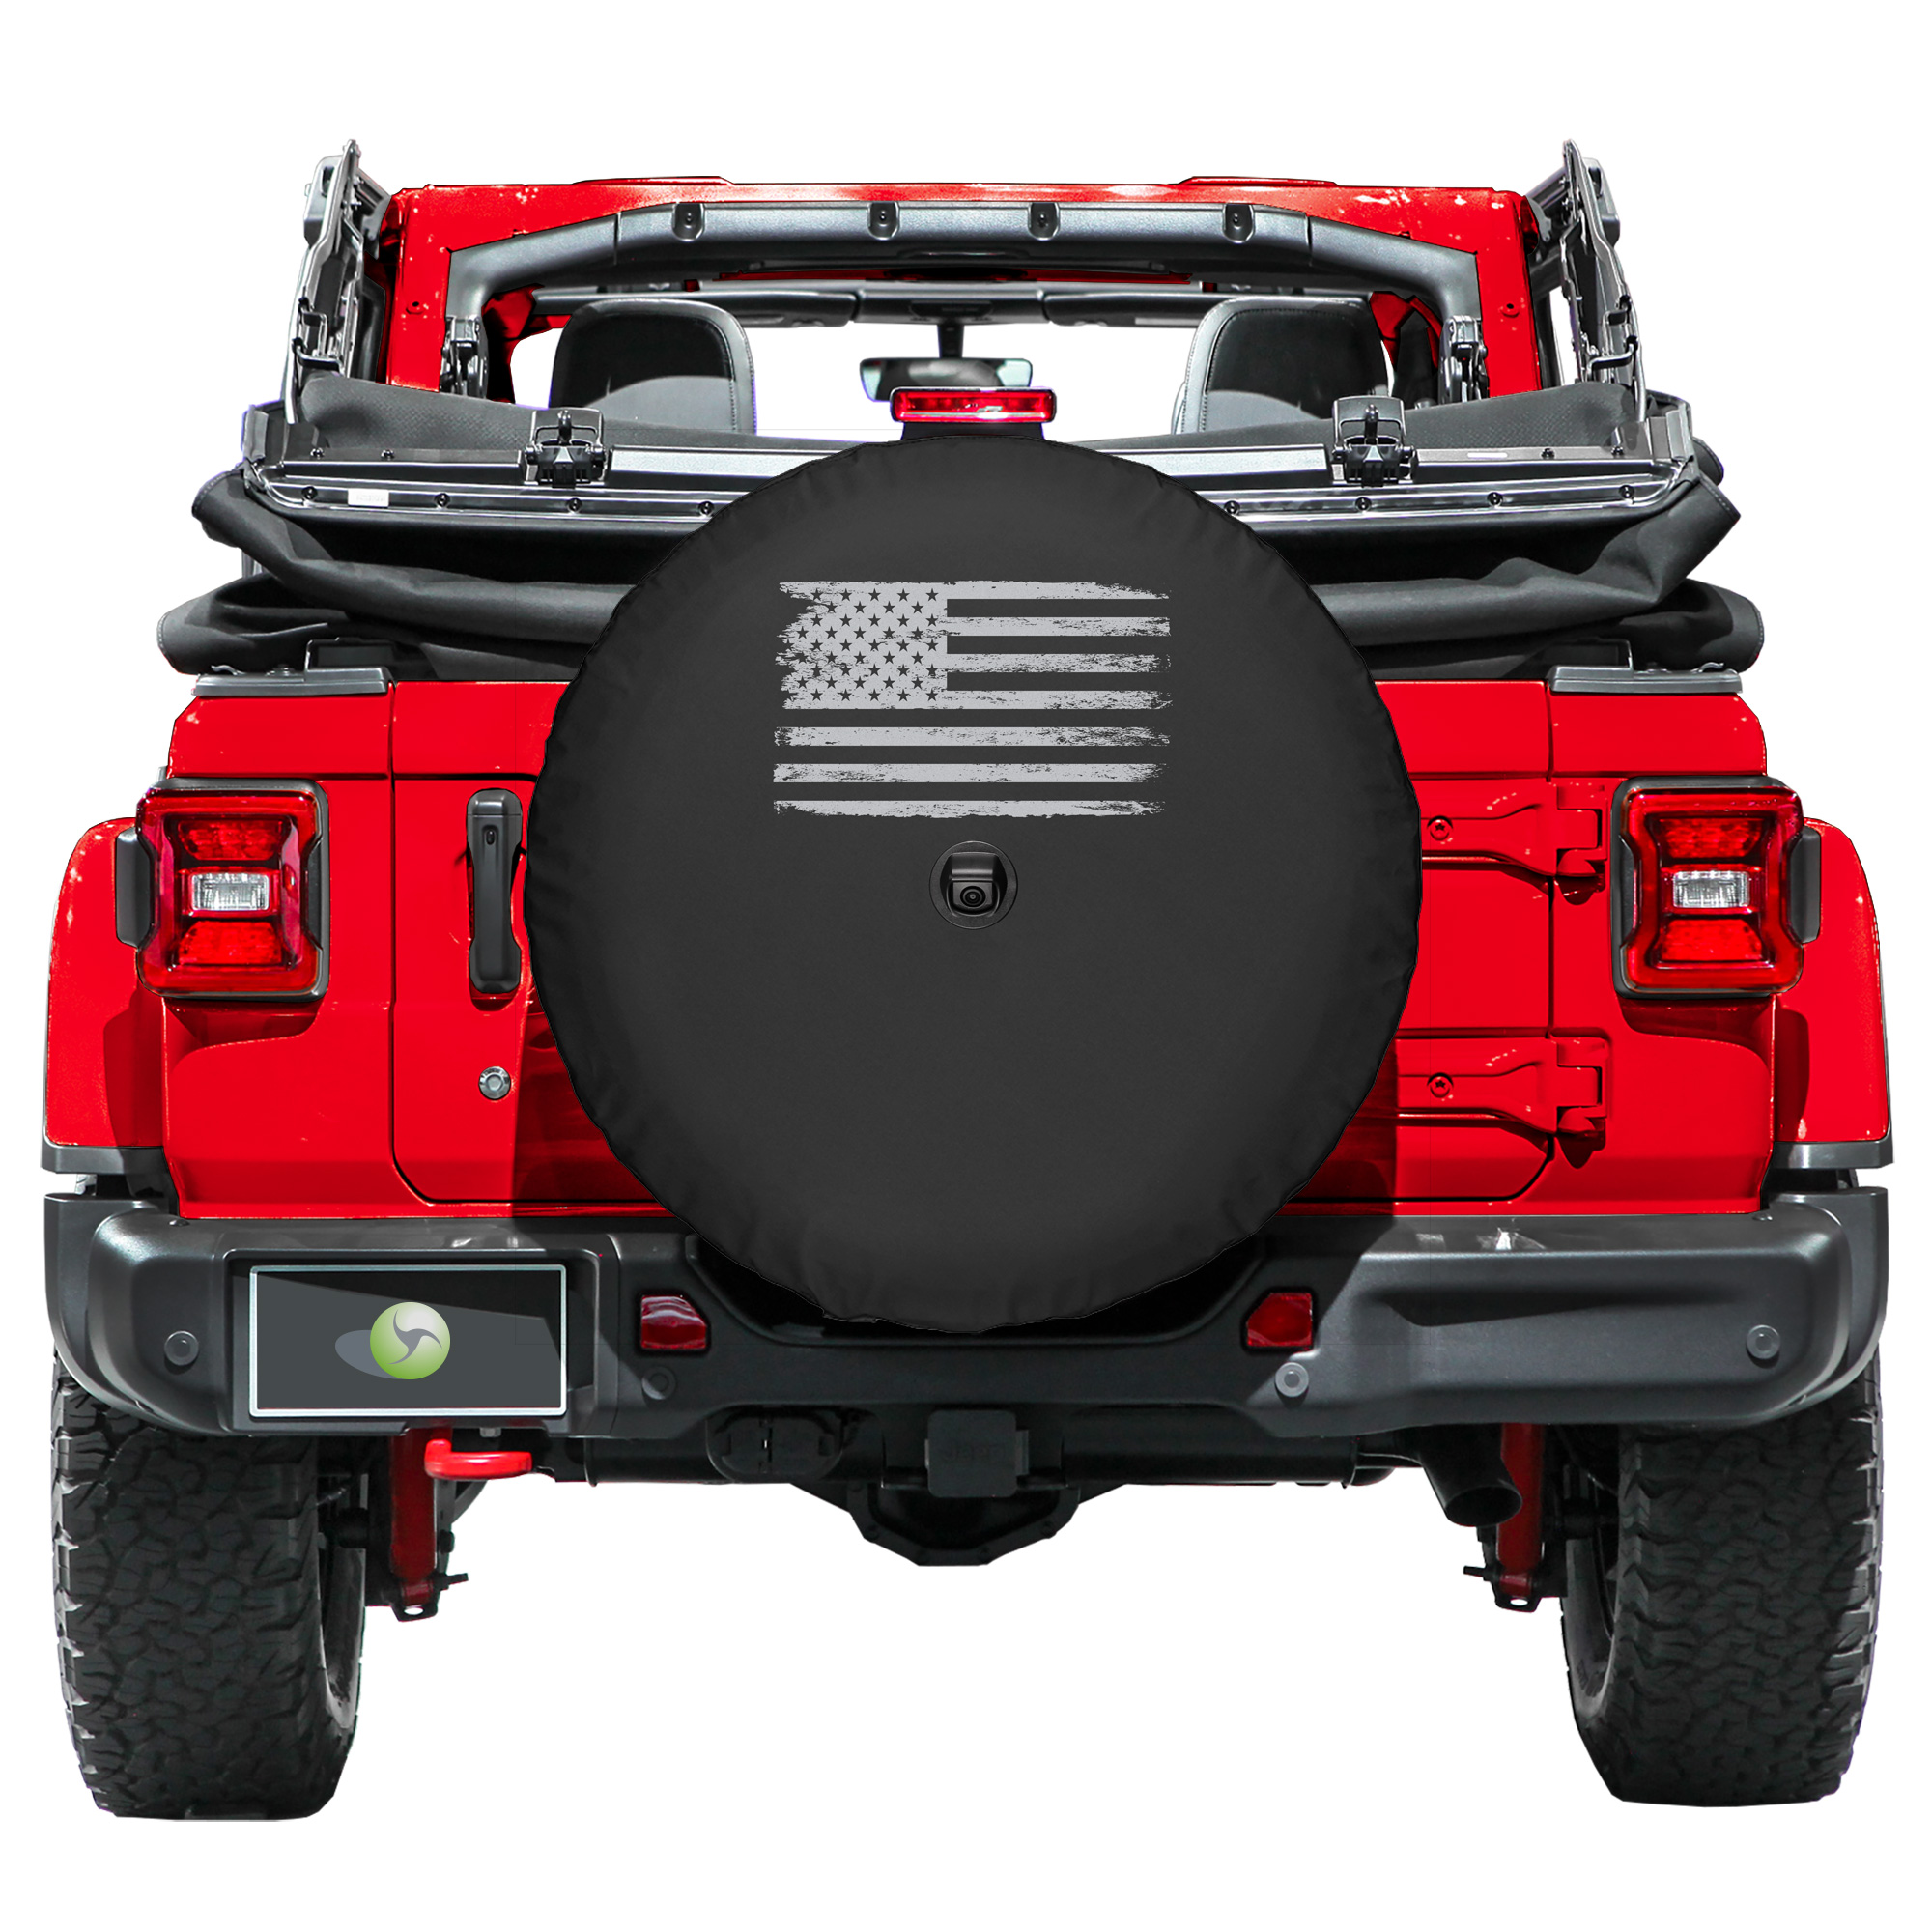 boomerang launches tire cover line designed for new jeep. Black Bedroom Furniture Sets. Home Design Ideas